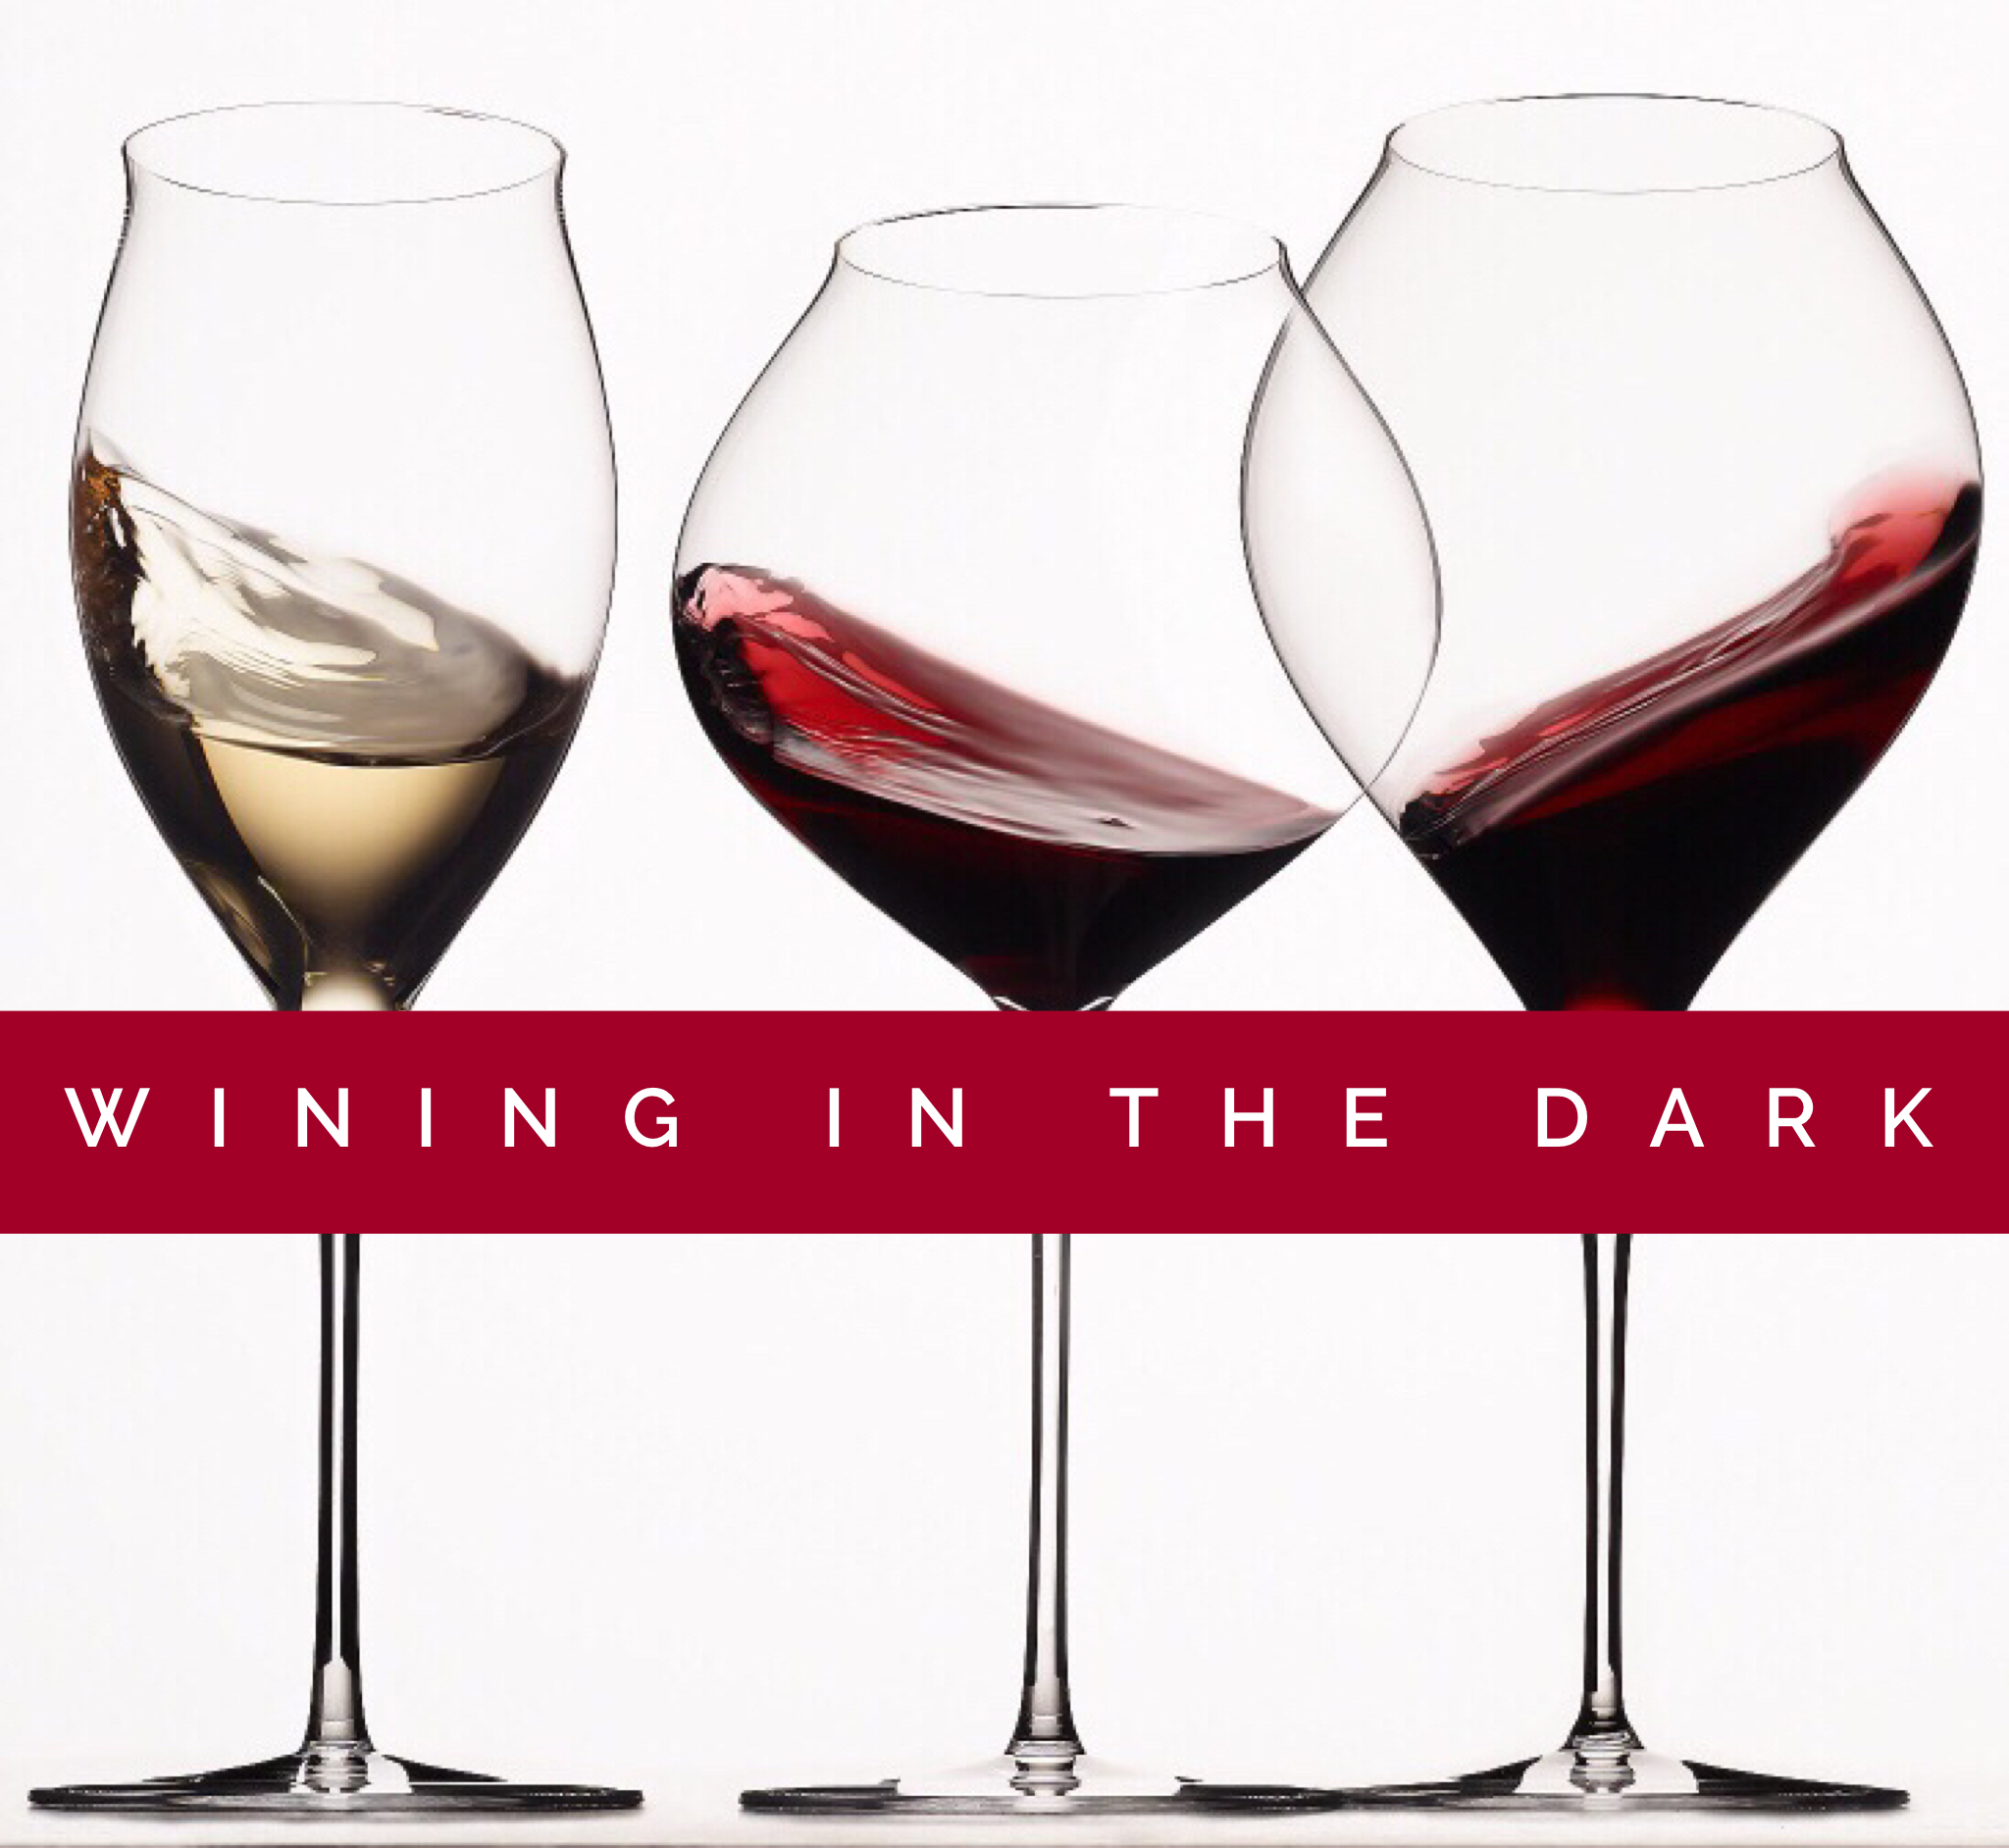 4th Annual Wining in the Dark!